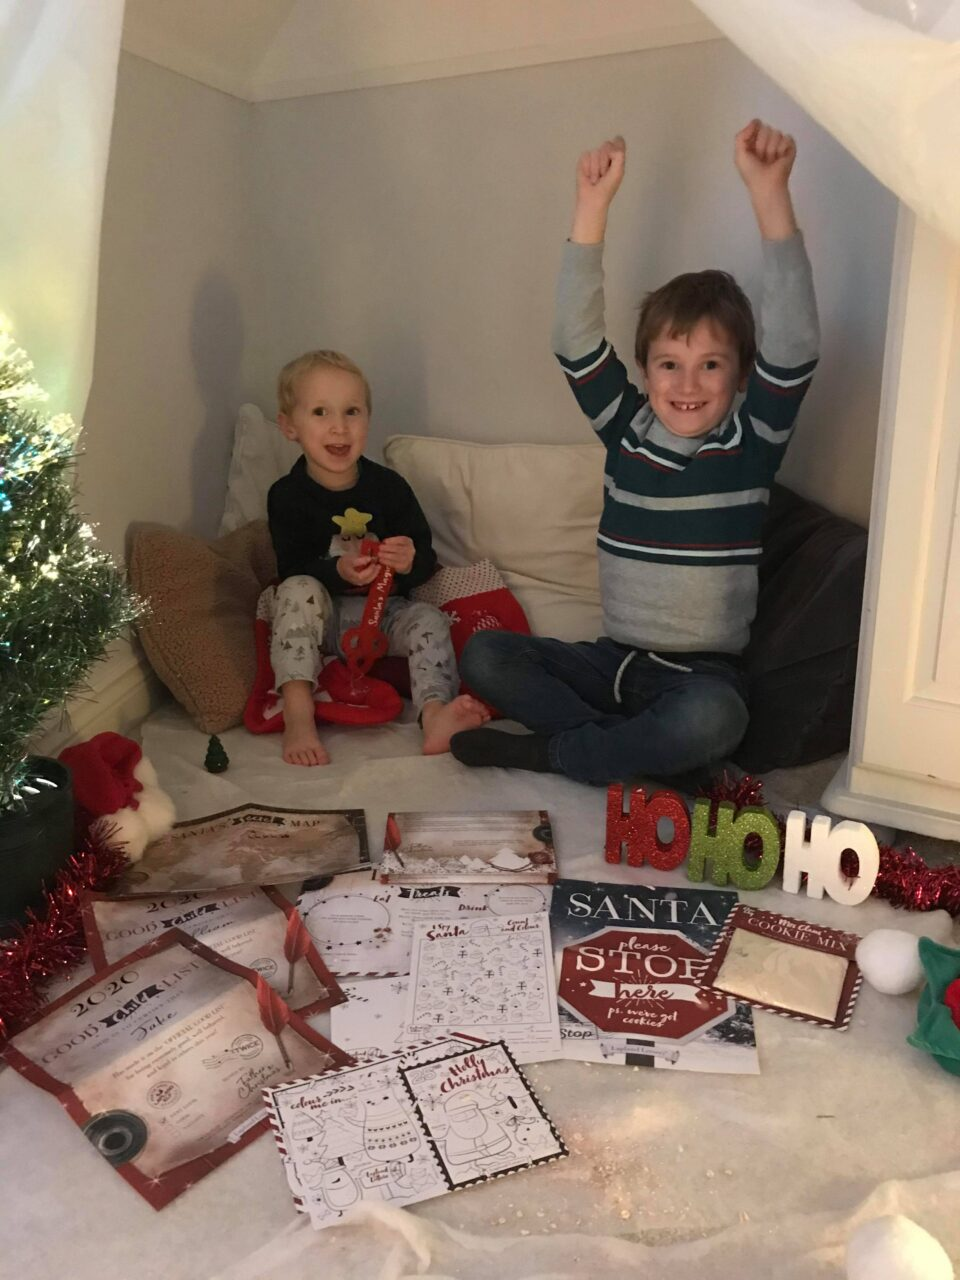 Jake with his arms up in celebration and william cheering whilst sat inside their grotto with their letters